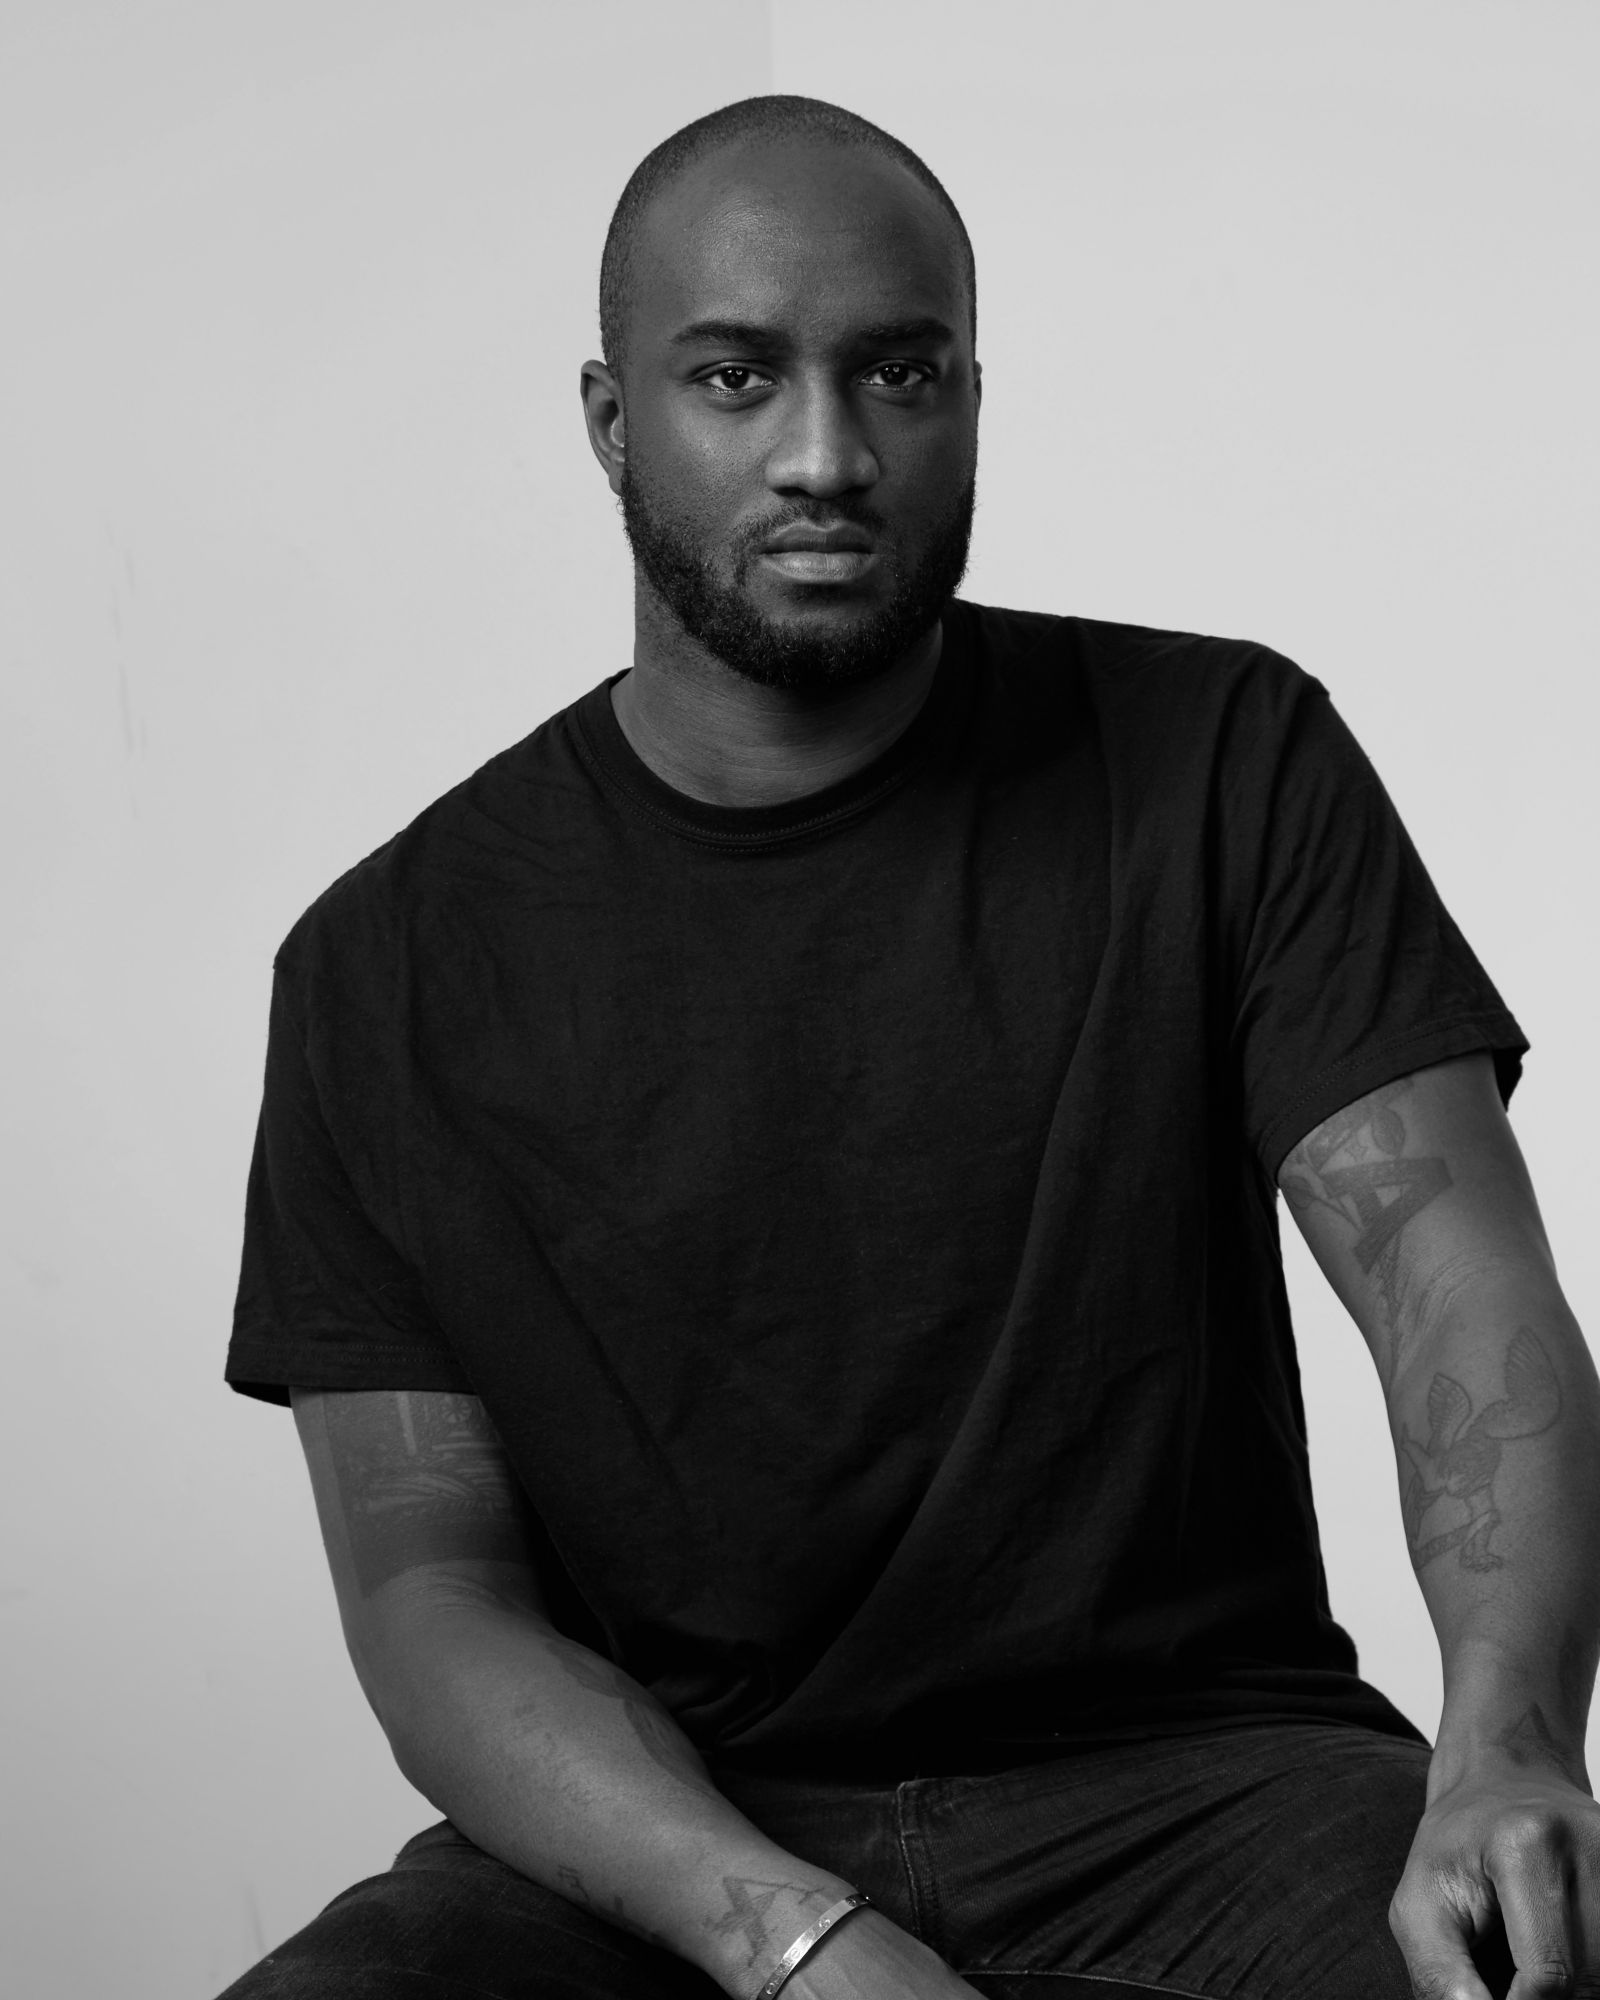 d4444d476d43 5 Minutes With Virgil Abloh Of Off-White